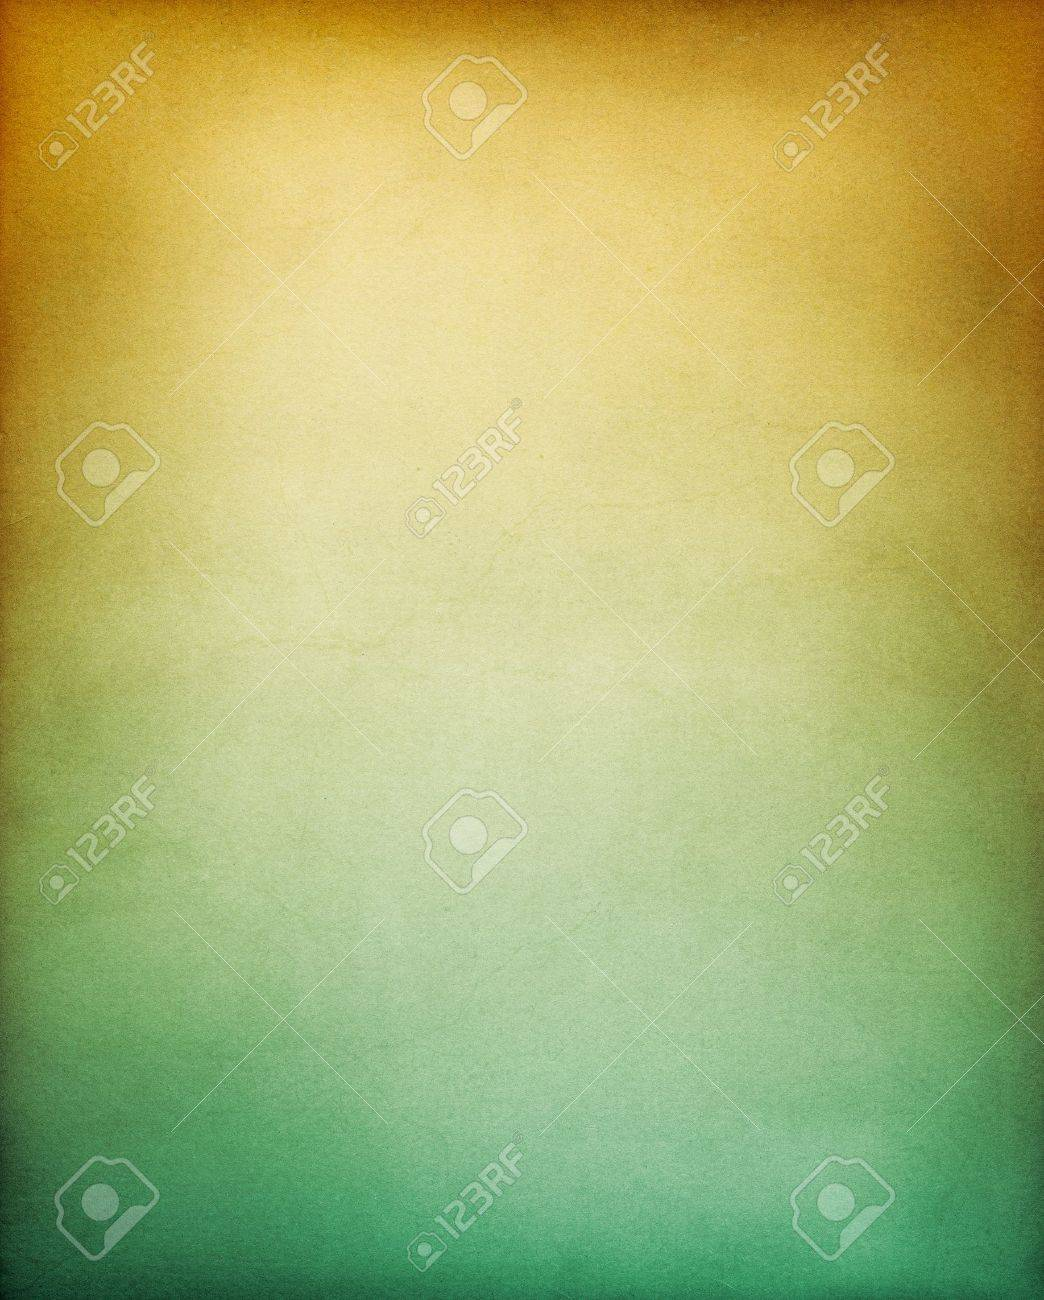 A vintage textured paper background with a yellow to green gradation. Stock Photo - 10032606